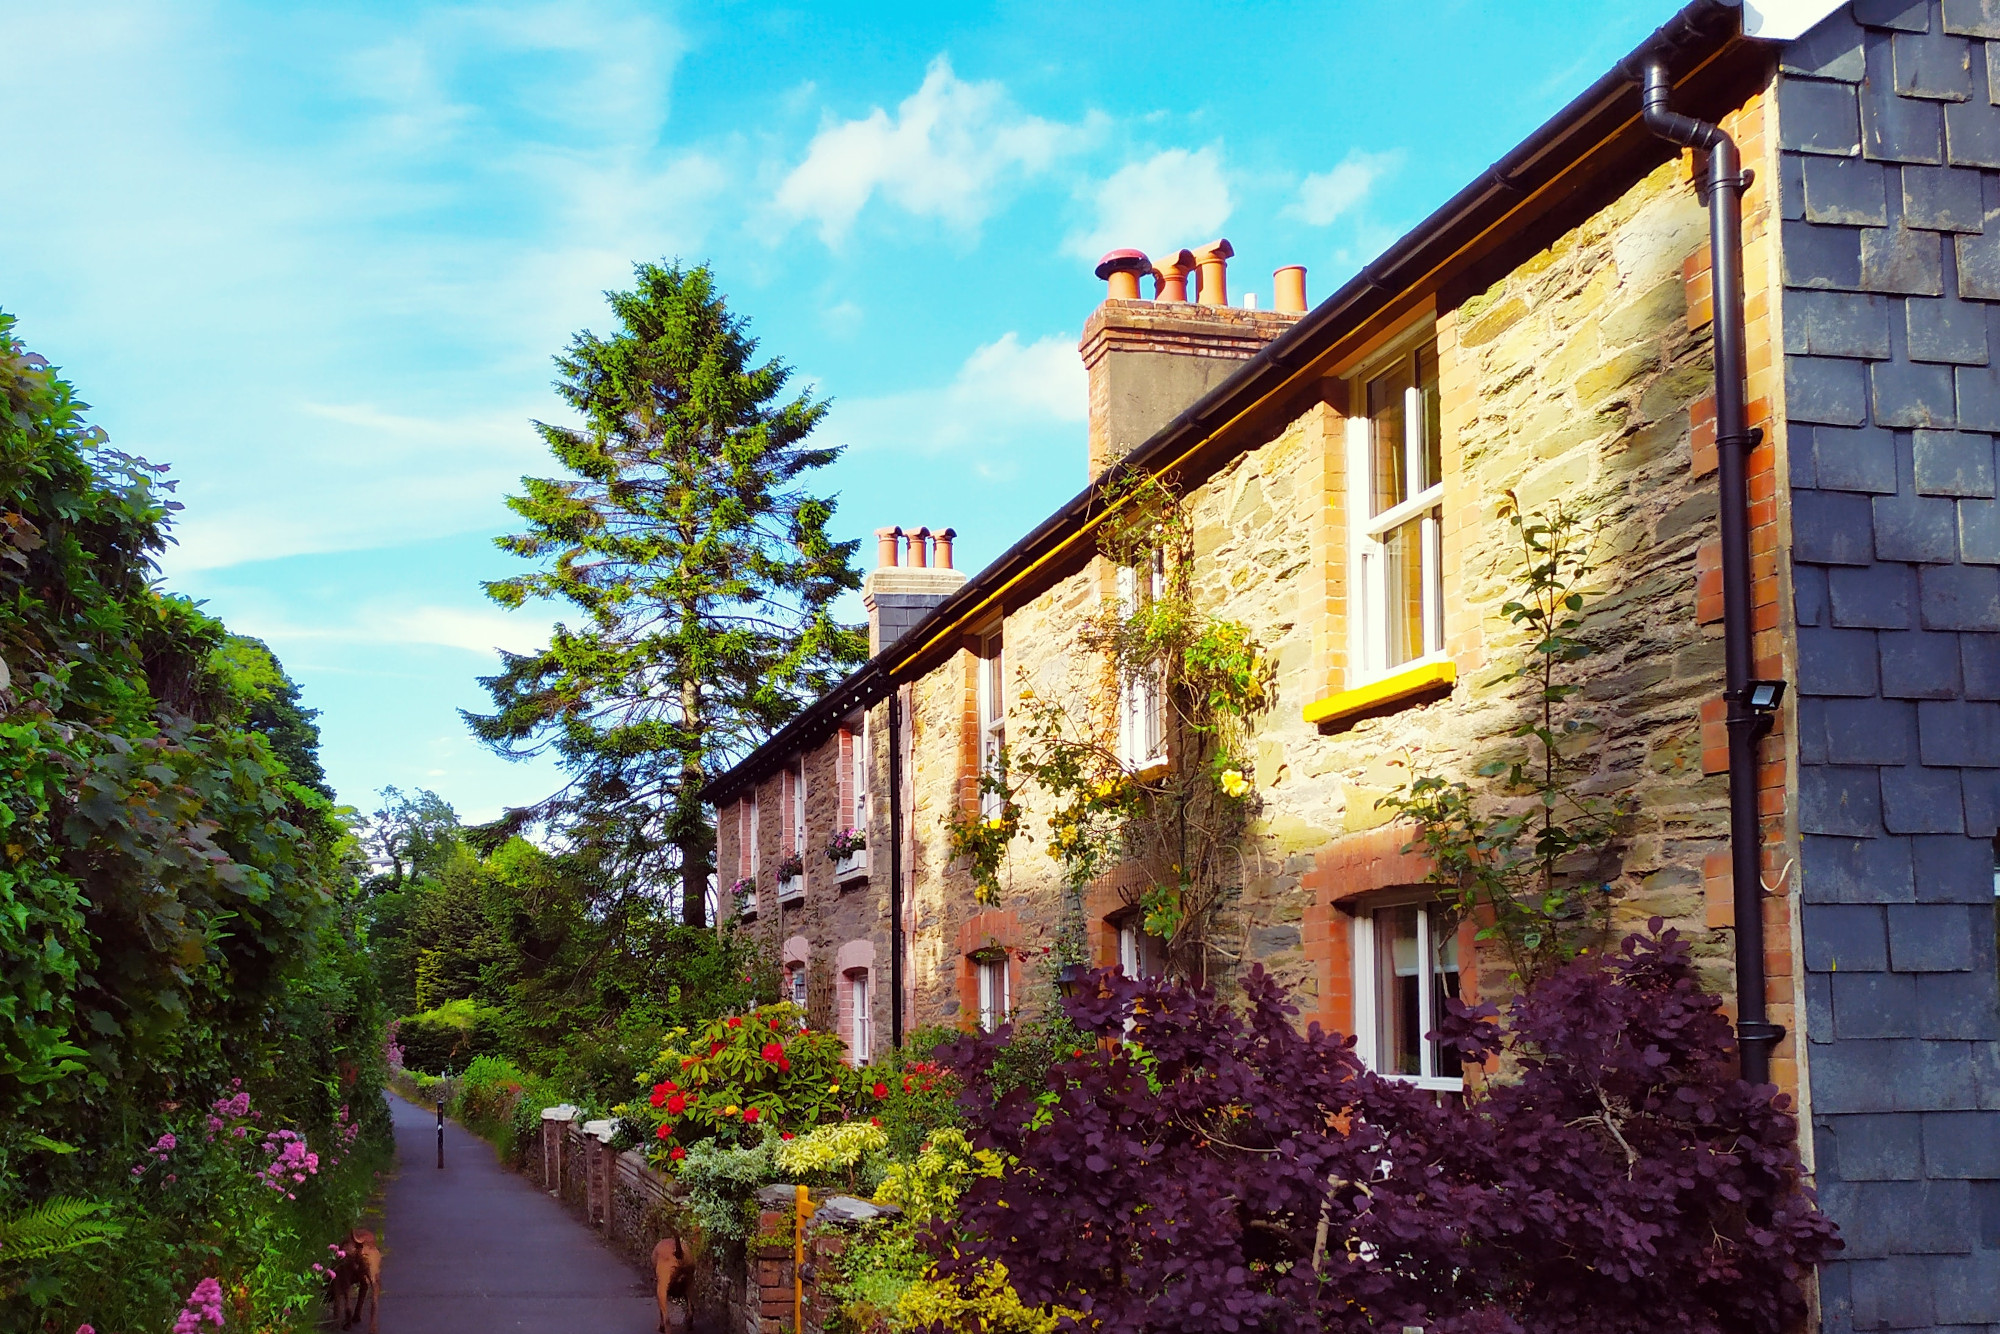 Row of sunlit cottages : Personal & Home Insurance from Millins Chartered Insurance Brokers